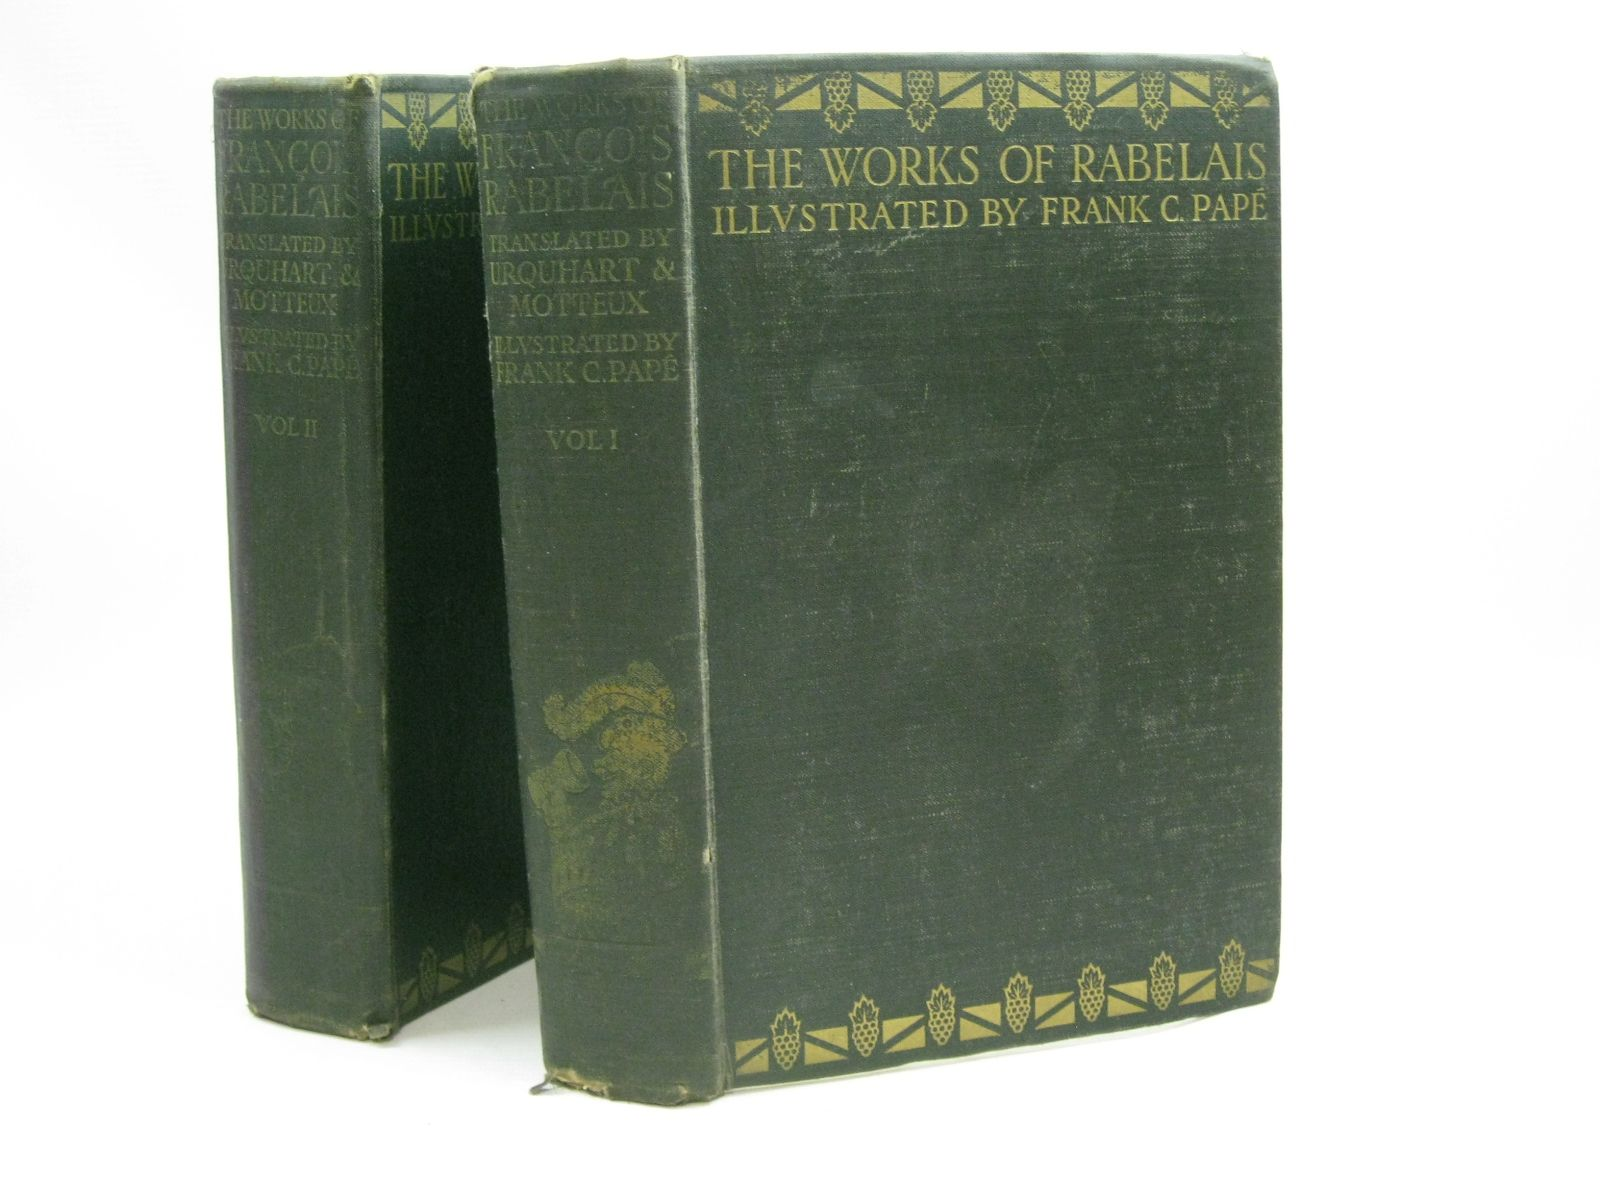 Photo of THE WORKS OF RABELAIS IN TWO VOLUMES written by Rabelais, Francois<br />Urquhart, Thomas<br />Motteux, Peter<br />et al, illustrated by Pape, Frank C. published by John Lane The Bodley Head (STOCK CODE: 1404949)  for sale by Stella & Rose's Books